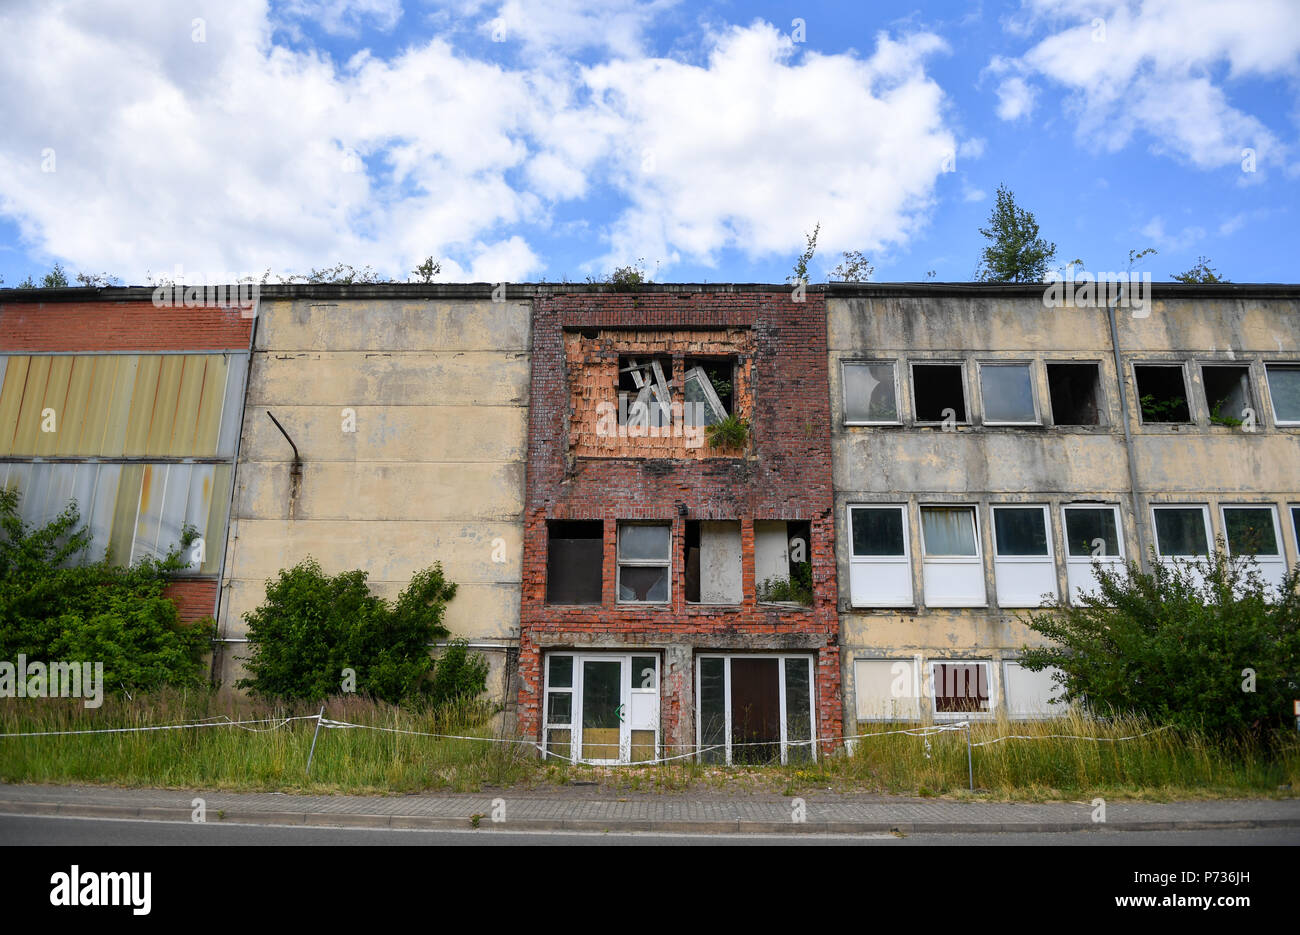 Bischofferode, Deutschland. 27th June, 2018. 27.06.2018, Bischofferode, Thuringen: Dilapidated buildings from the potash plant Bischofferode can be seen on the former company premises. Protests of the miners at the close of the early 1990s made the work known nationwide. (to dpa 'hunger strike! - Search for clues 25 years after the Kali rebellion' from 28.06.2018) Credit: Jens Kalaene/dpa central image/dpa | usage worldwide/dpa/Alamy Live News - Stock Image